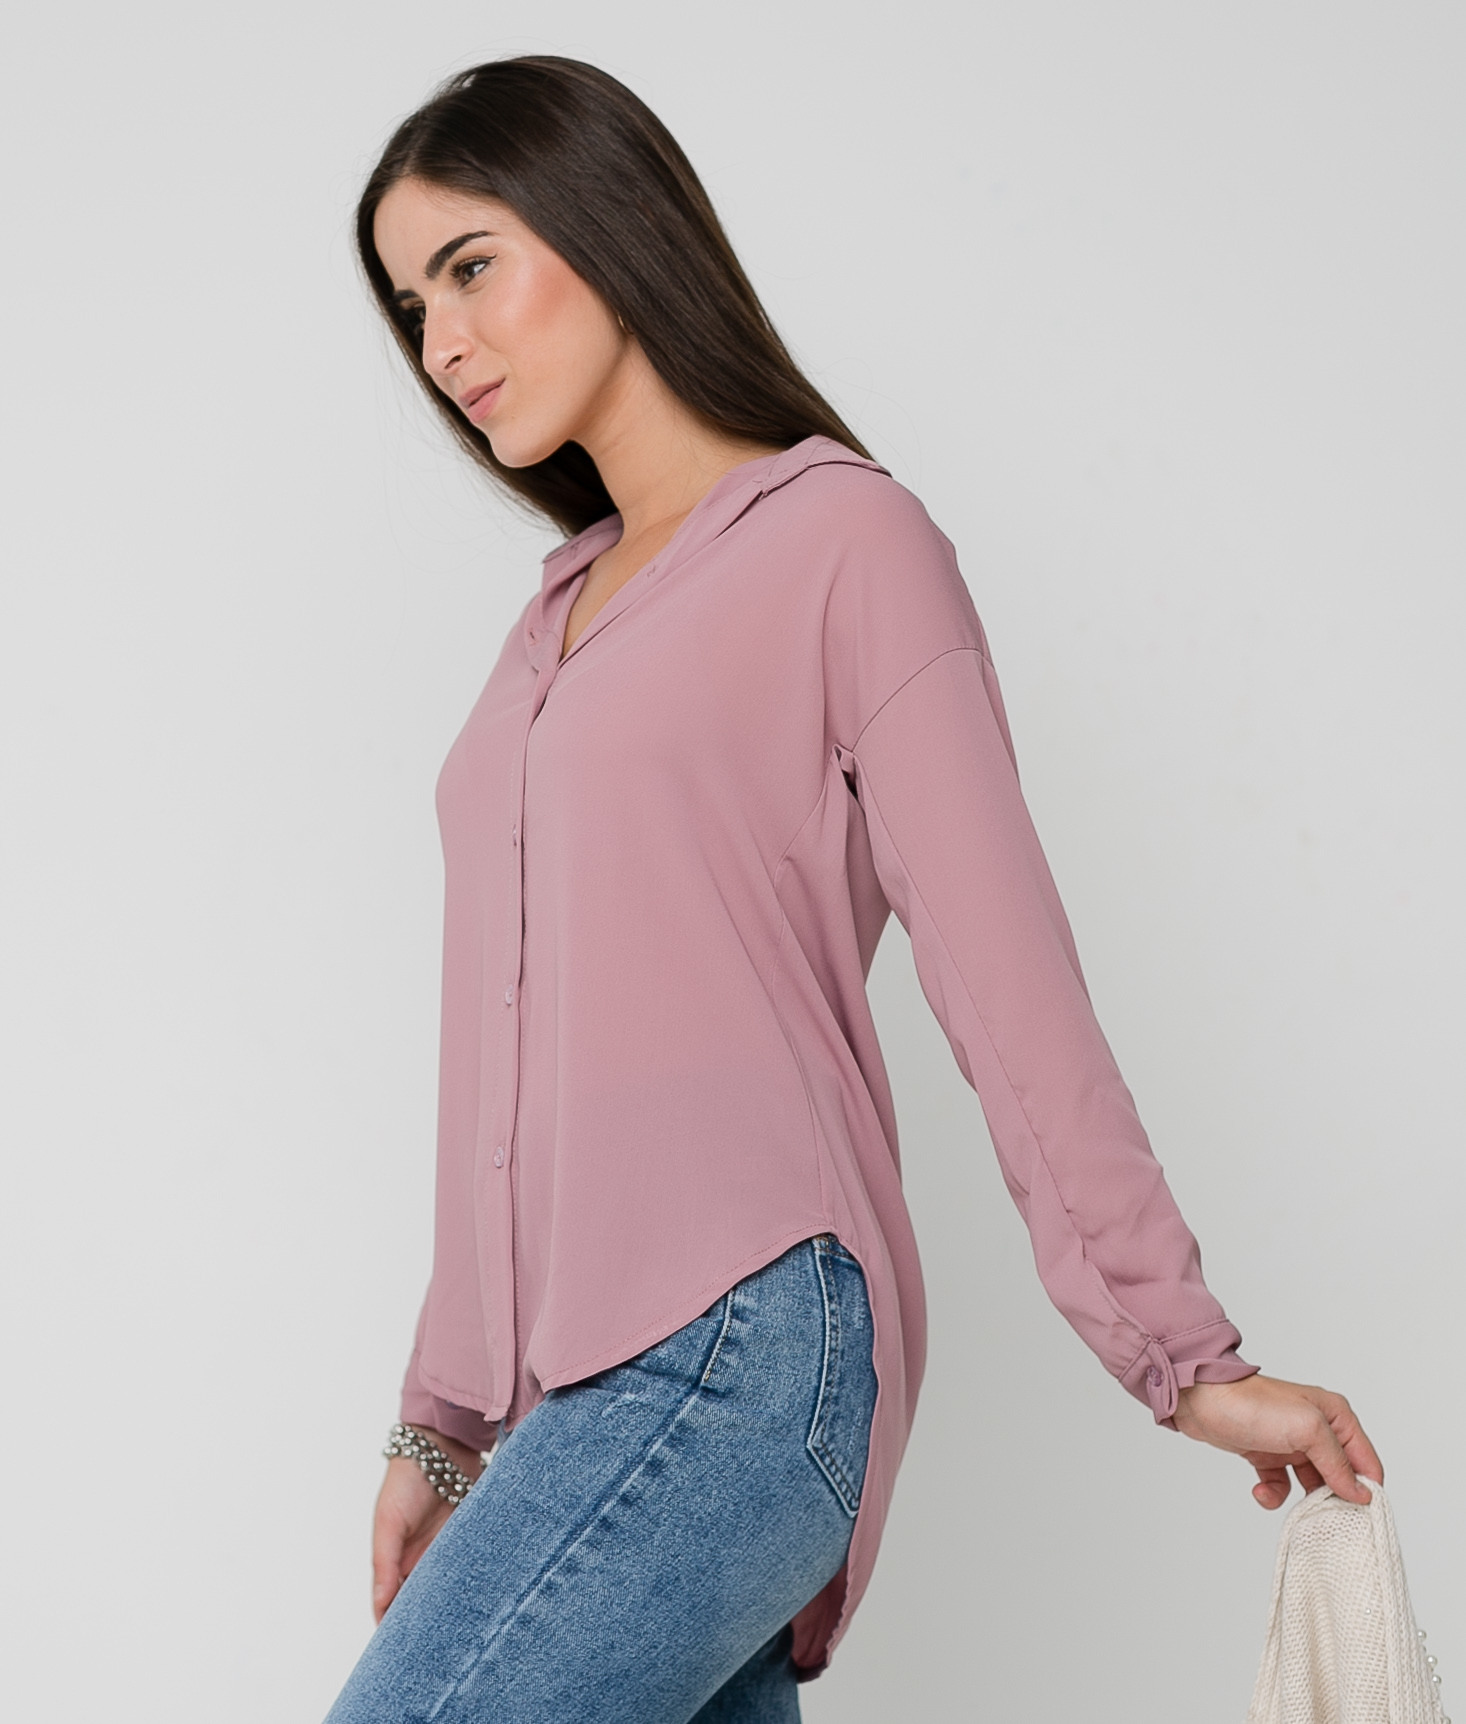 MERILA SHIRT - PURPLE